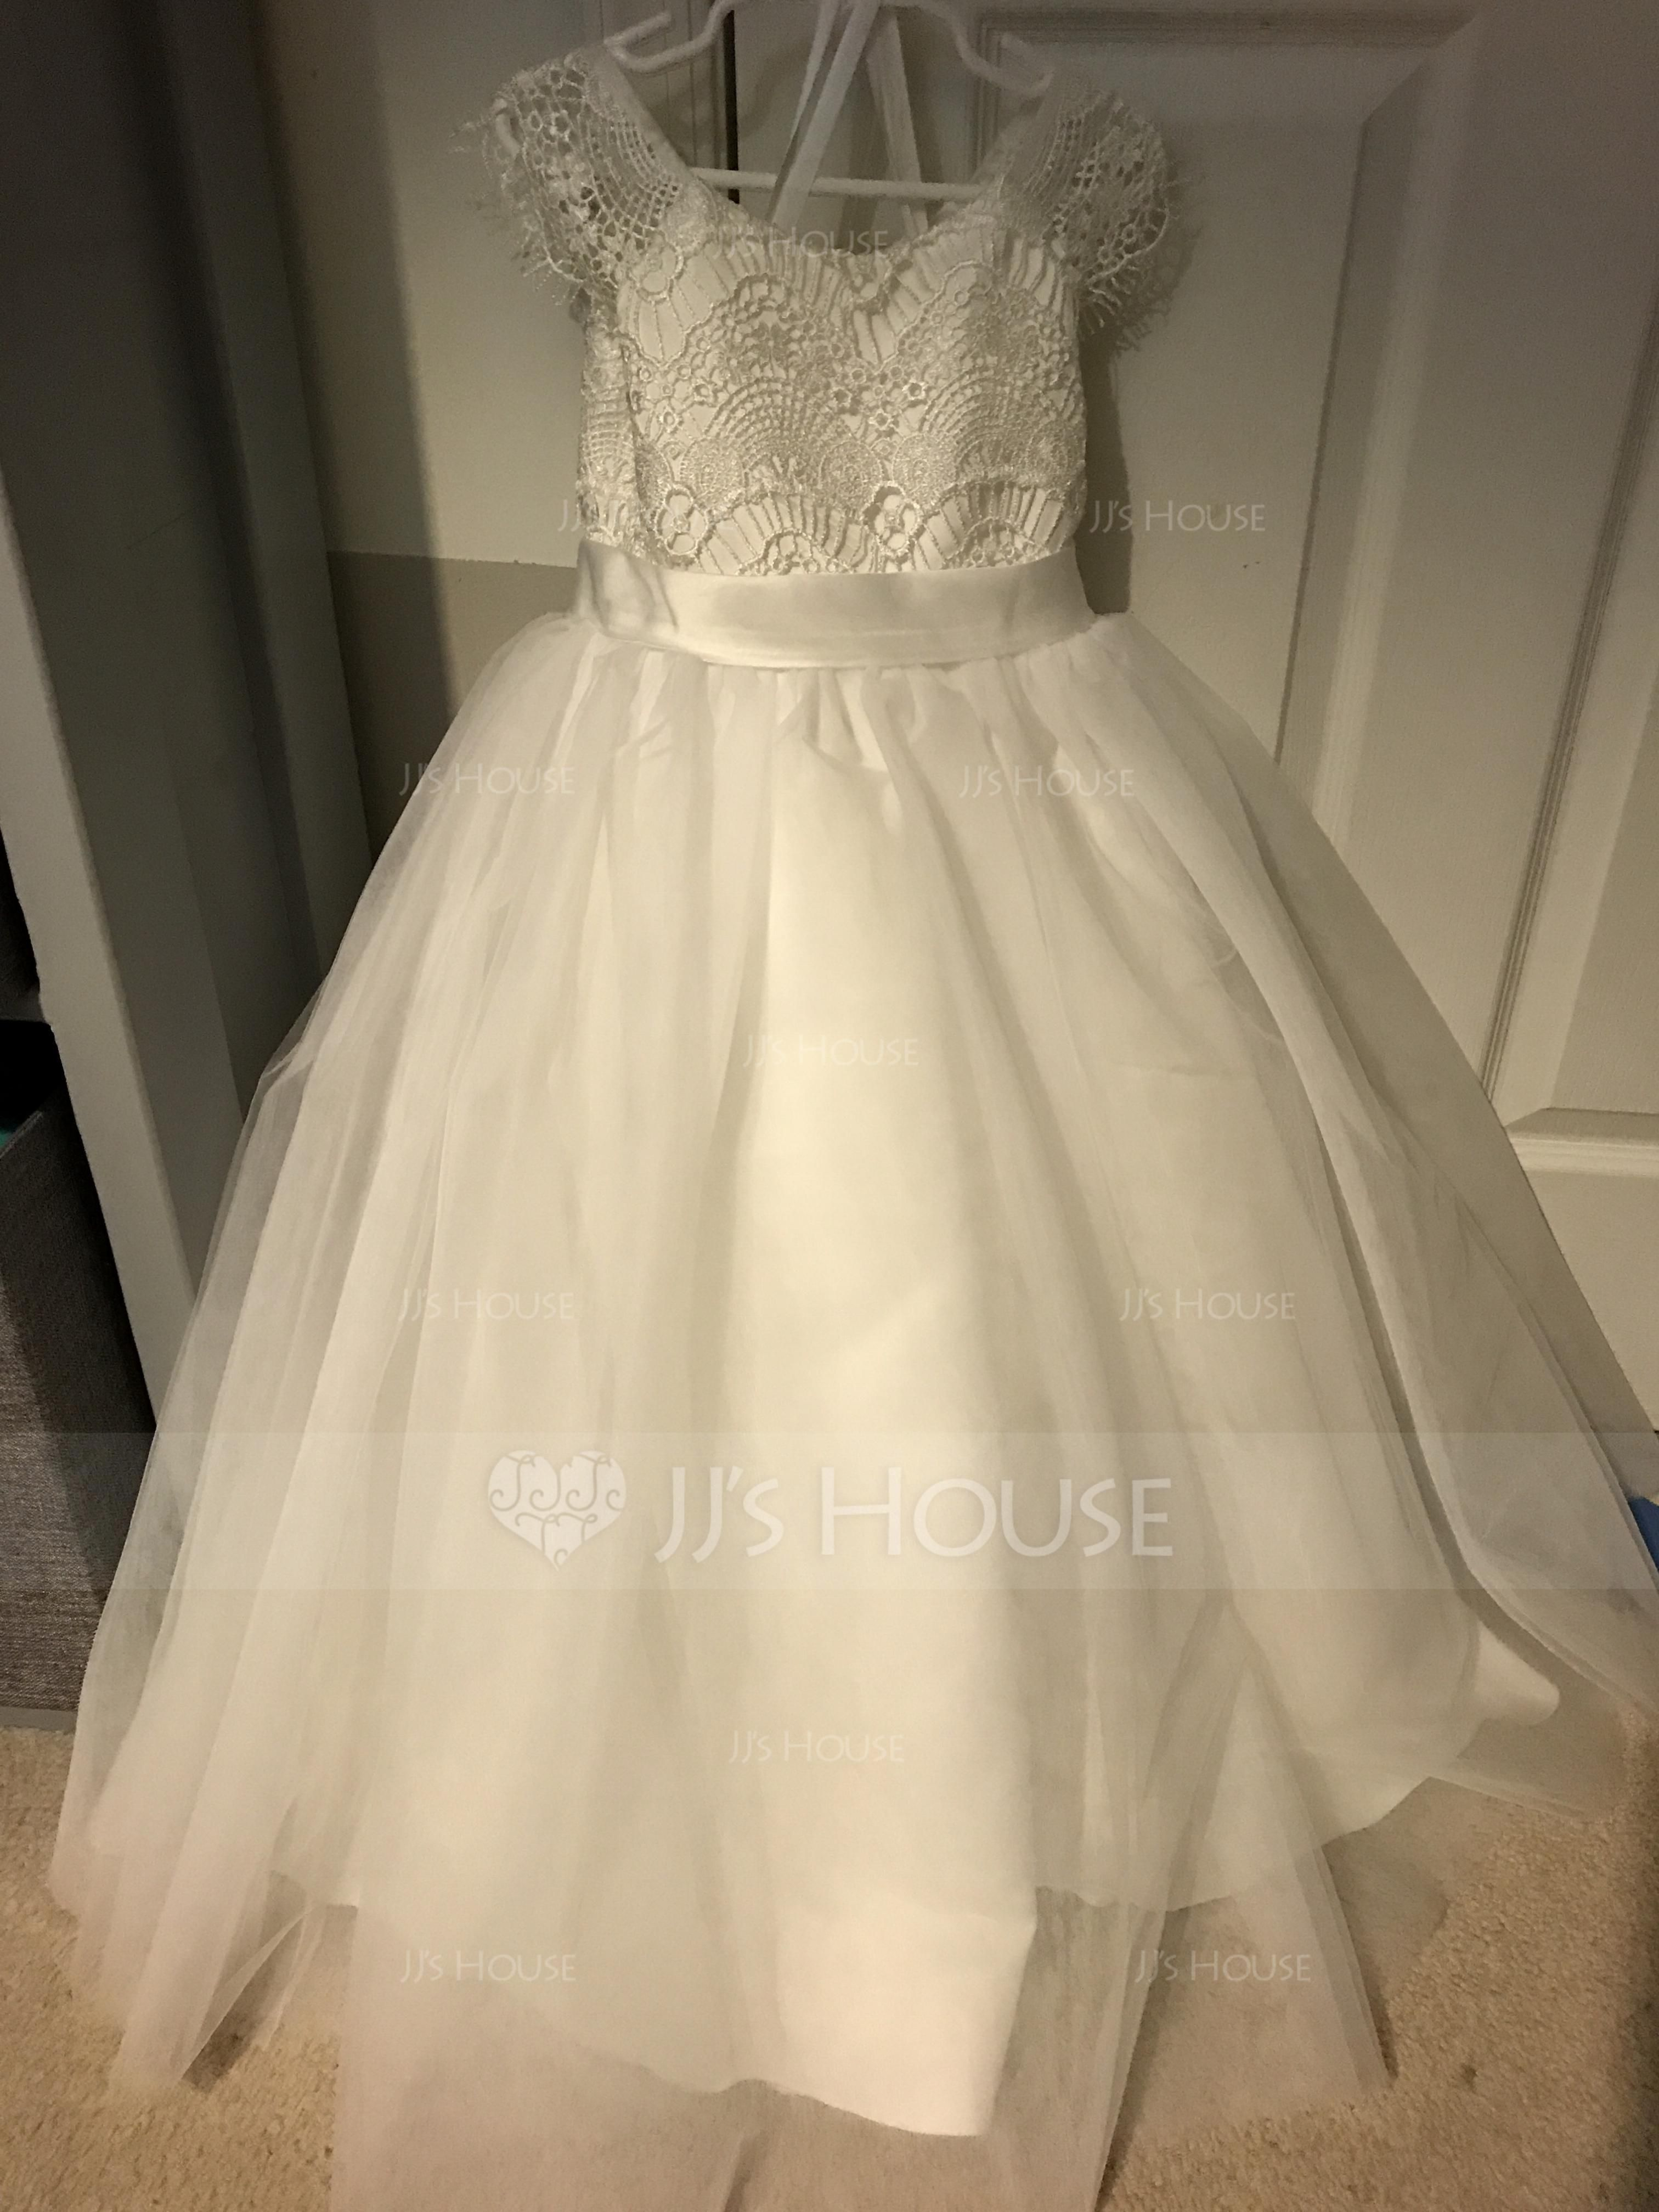 70a783acd A-Line/Princess Knee-length Flower Girl Dress - Tulle/Lace Sleeveless Scoop  Neck With Appliques (Undetachable sash) (010105755) - JJsHouse